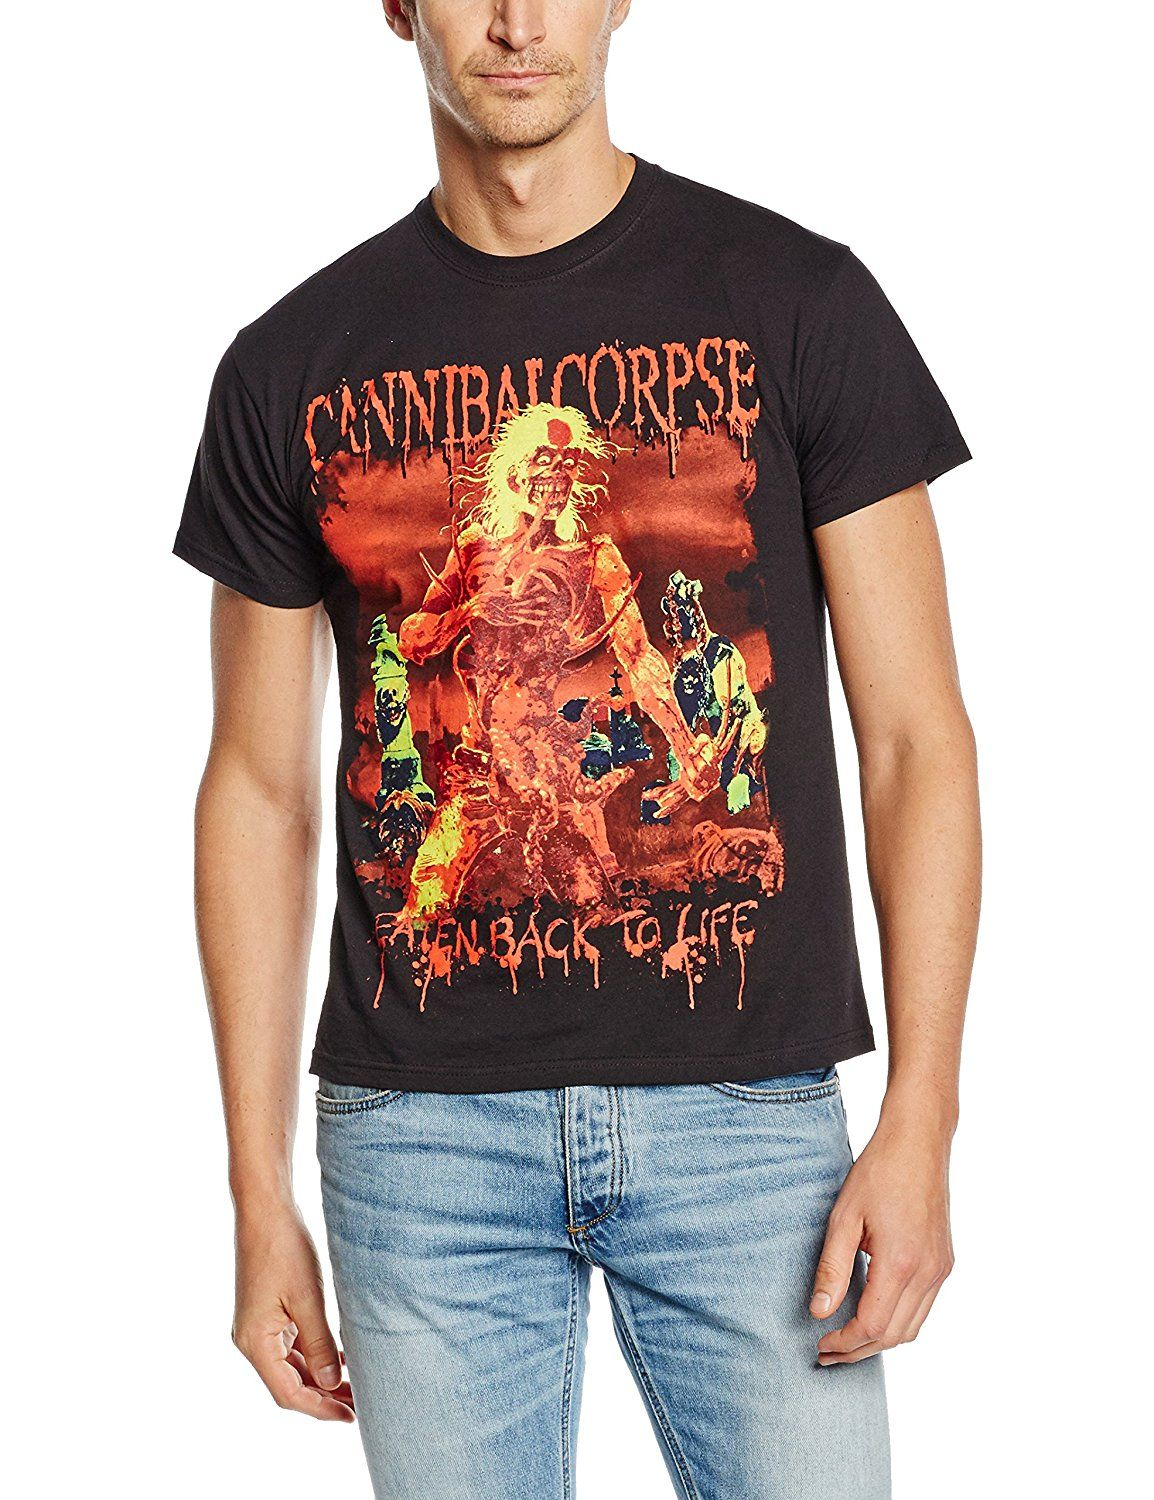 128464d9d Plastichead Herren T-Shirt Cannibal Corpse Eaten Back To Life 2015:  Amazon.de: Bekleidung